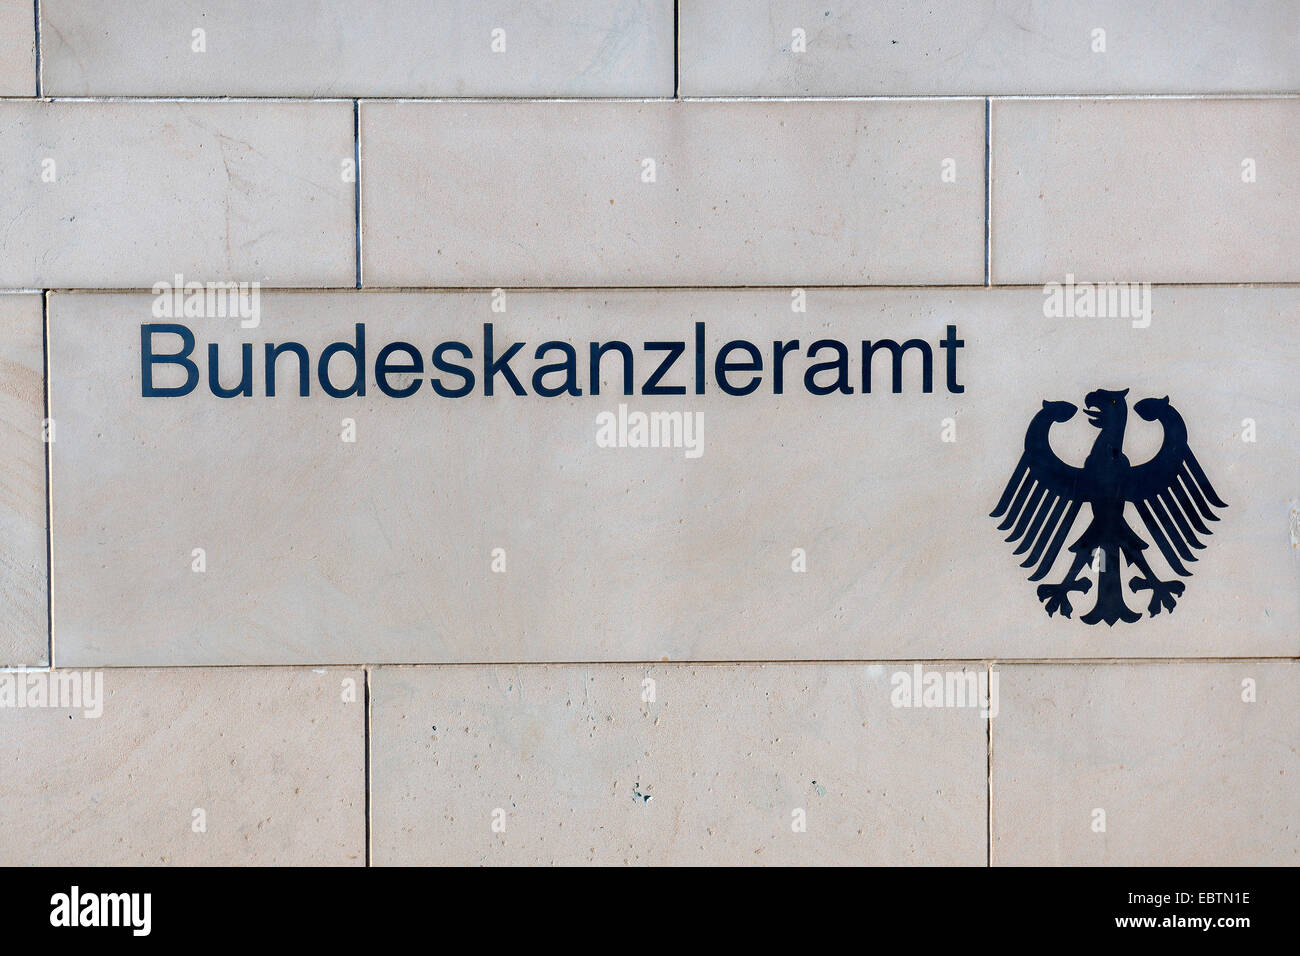 'Bundeskanzleramt' and federal eagle at the wall of German chancellery, Germany, Berlin Stock Photo